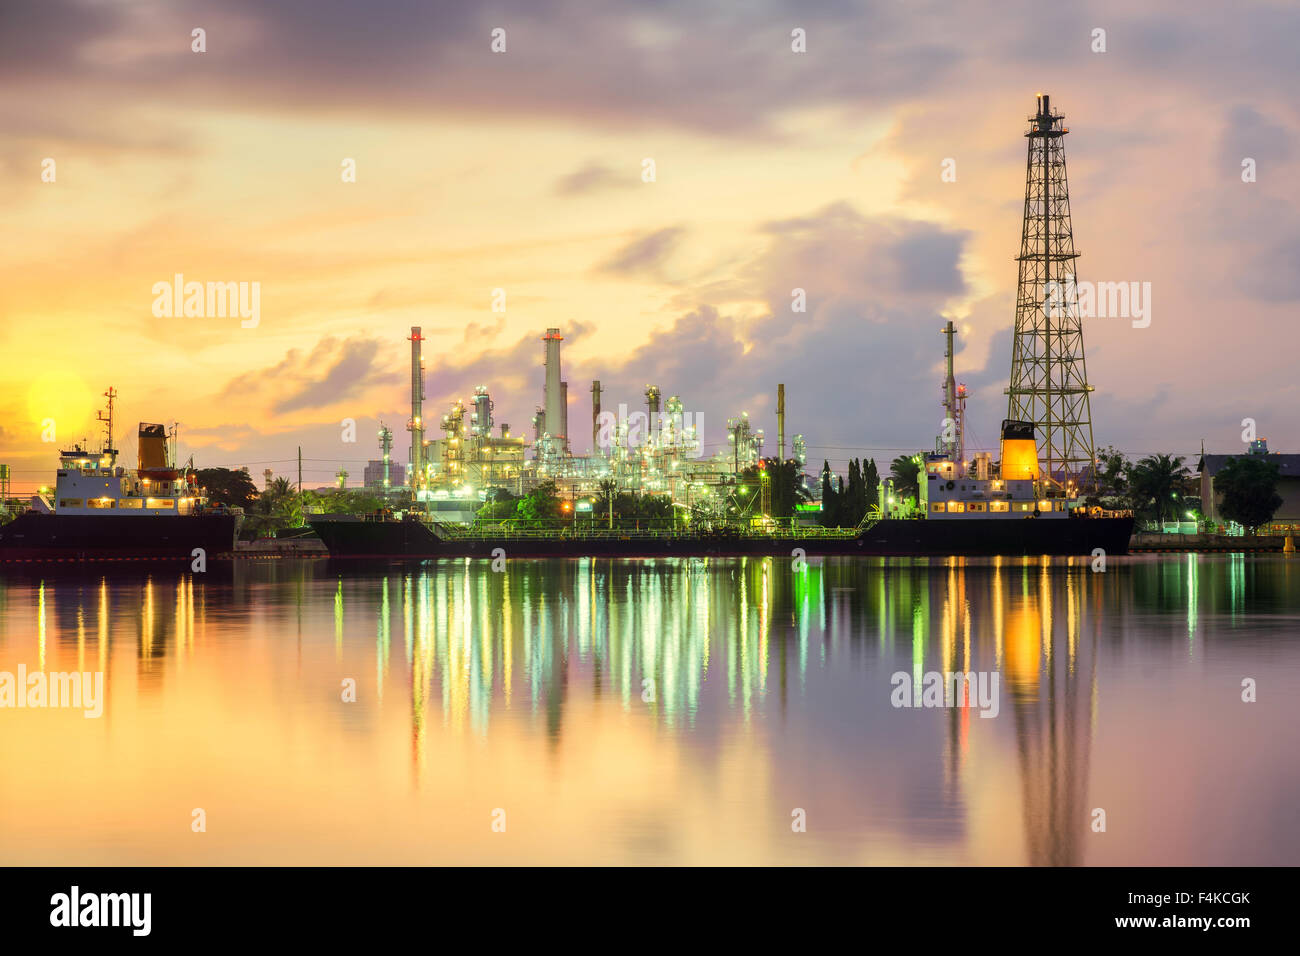 Oil tank ship mooring in oil refinery industry at twilight time - Stock Image